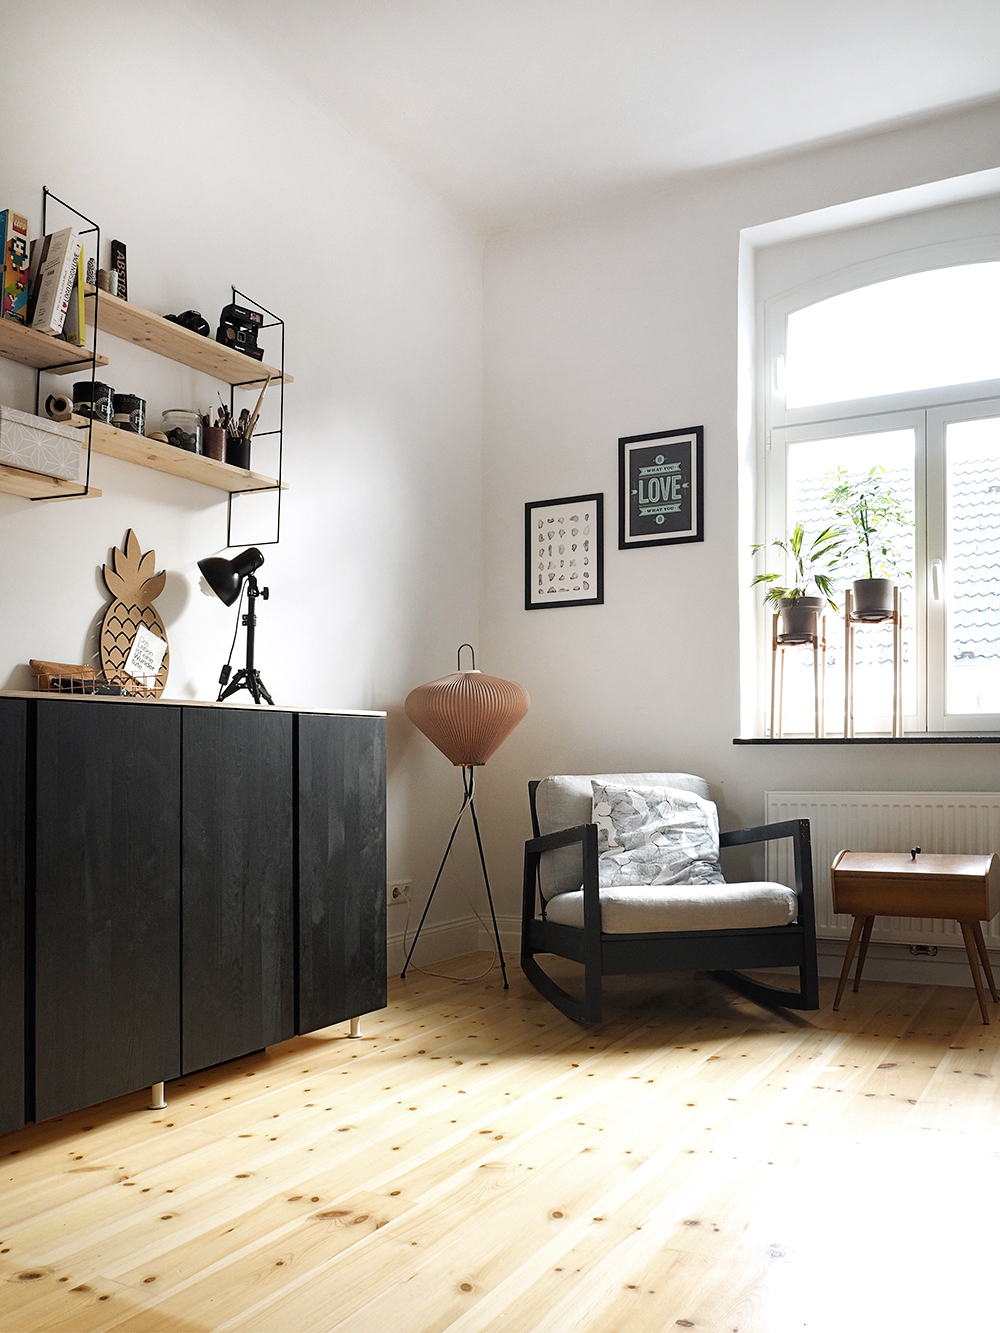 ikea hack wie du aus ivar schr nken ein cooles sideboard machst craftifair. Black Bedroom Furniture Sets. Home Design Ideas